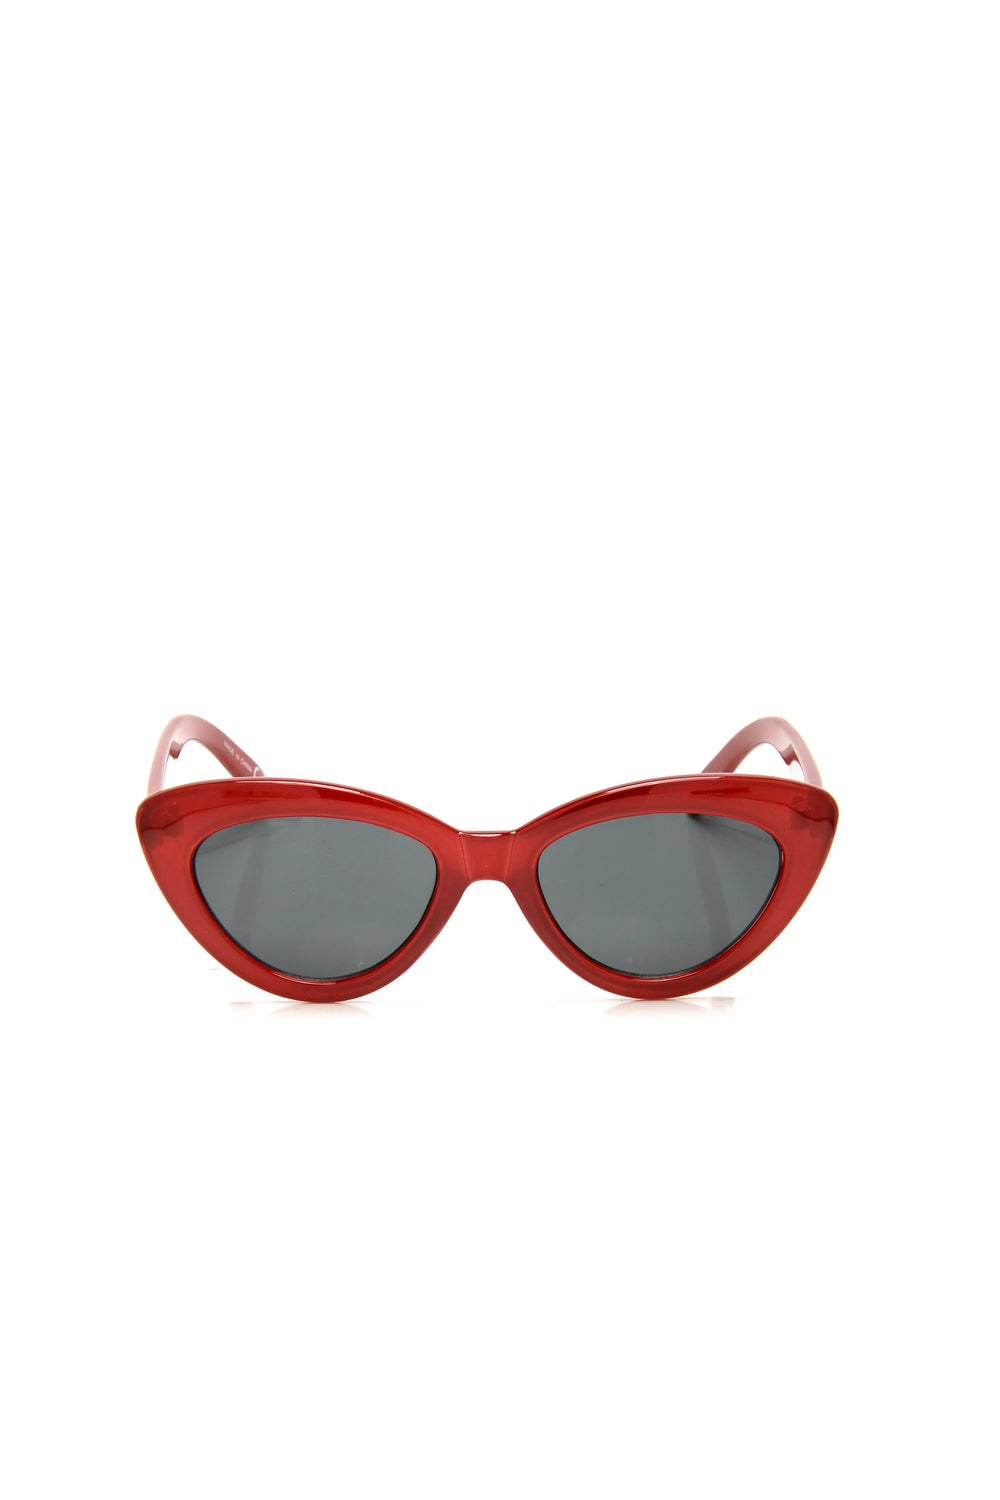 Guilty Party Sunglasses - Red